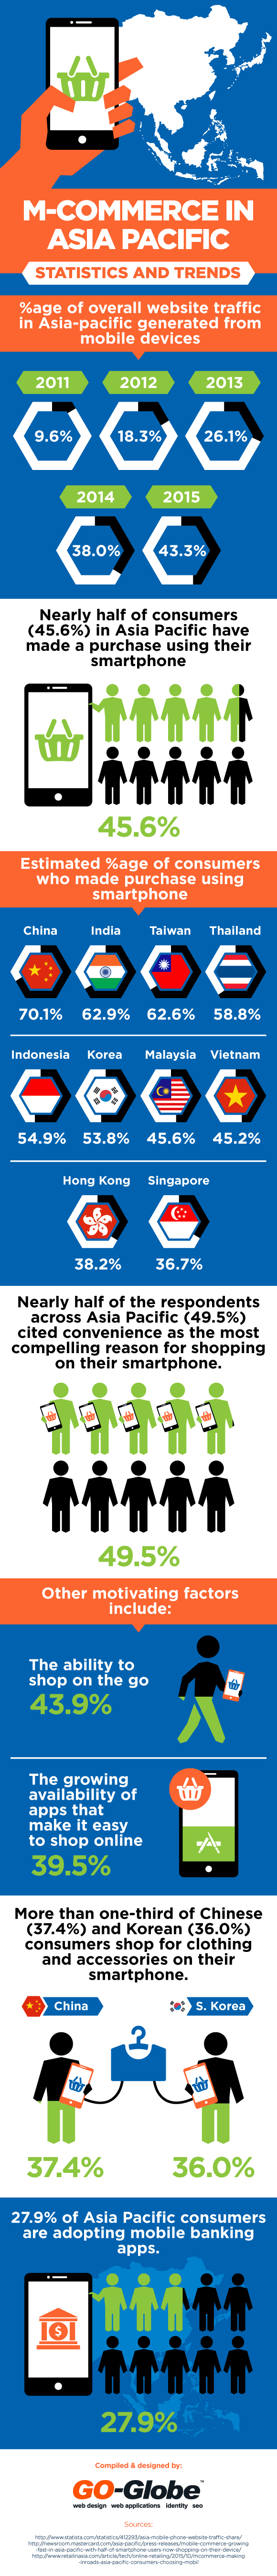 Mobile commerce in Asia Pacific